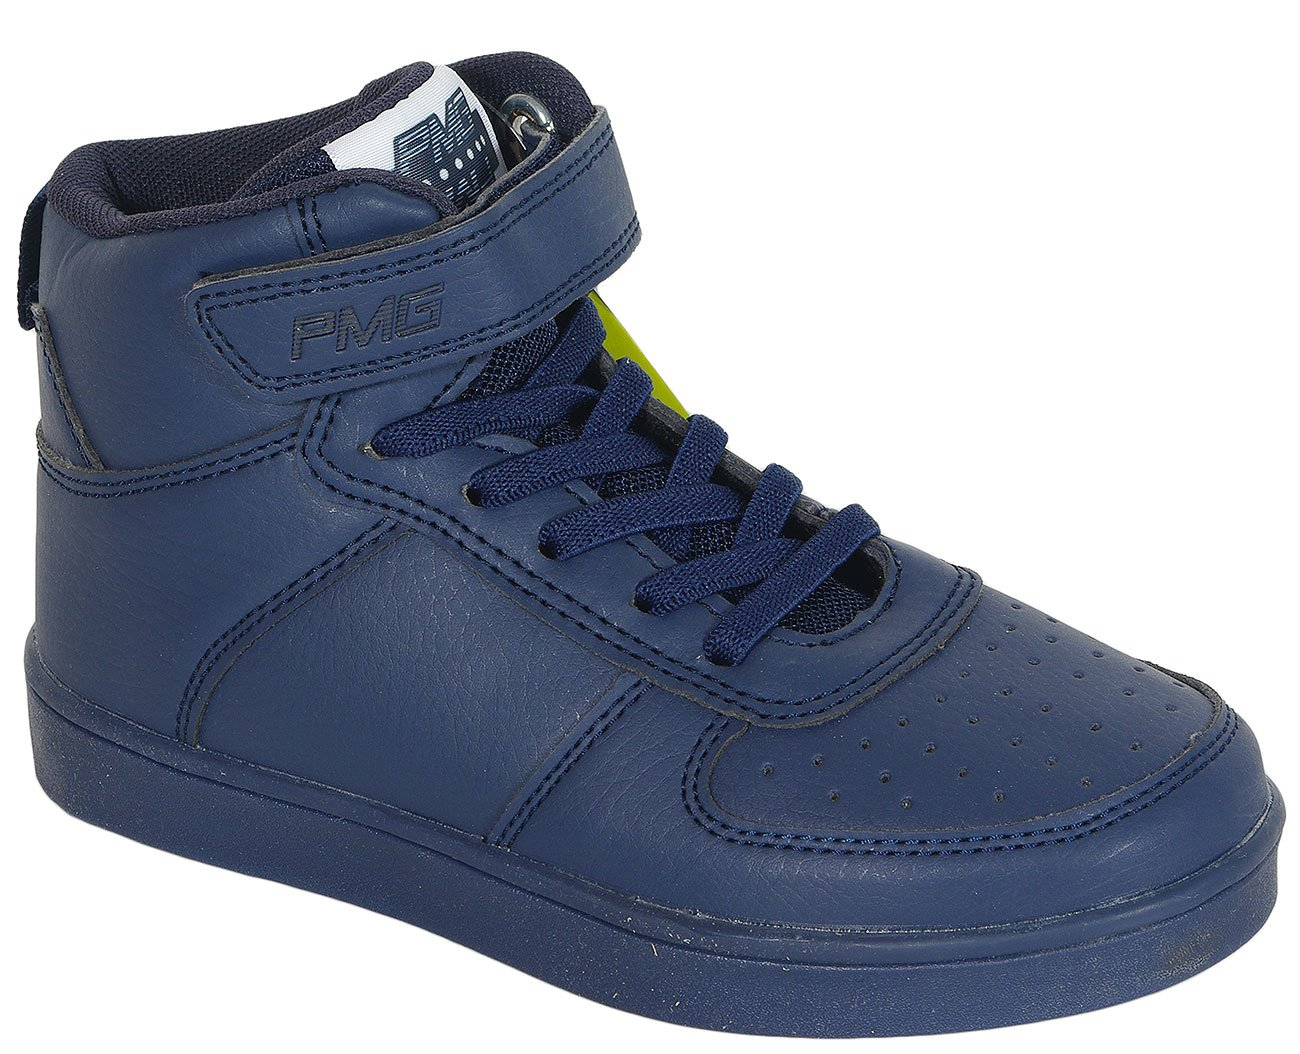 Primigi B&G Total Light Bottalato Pu Navy sneakers